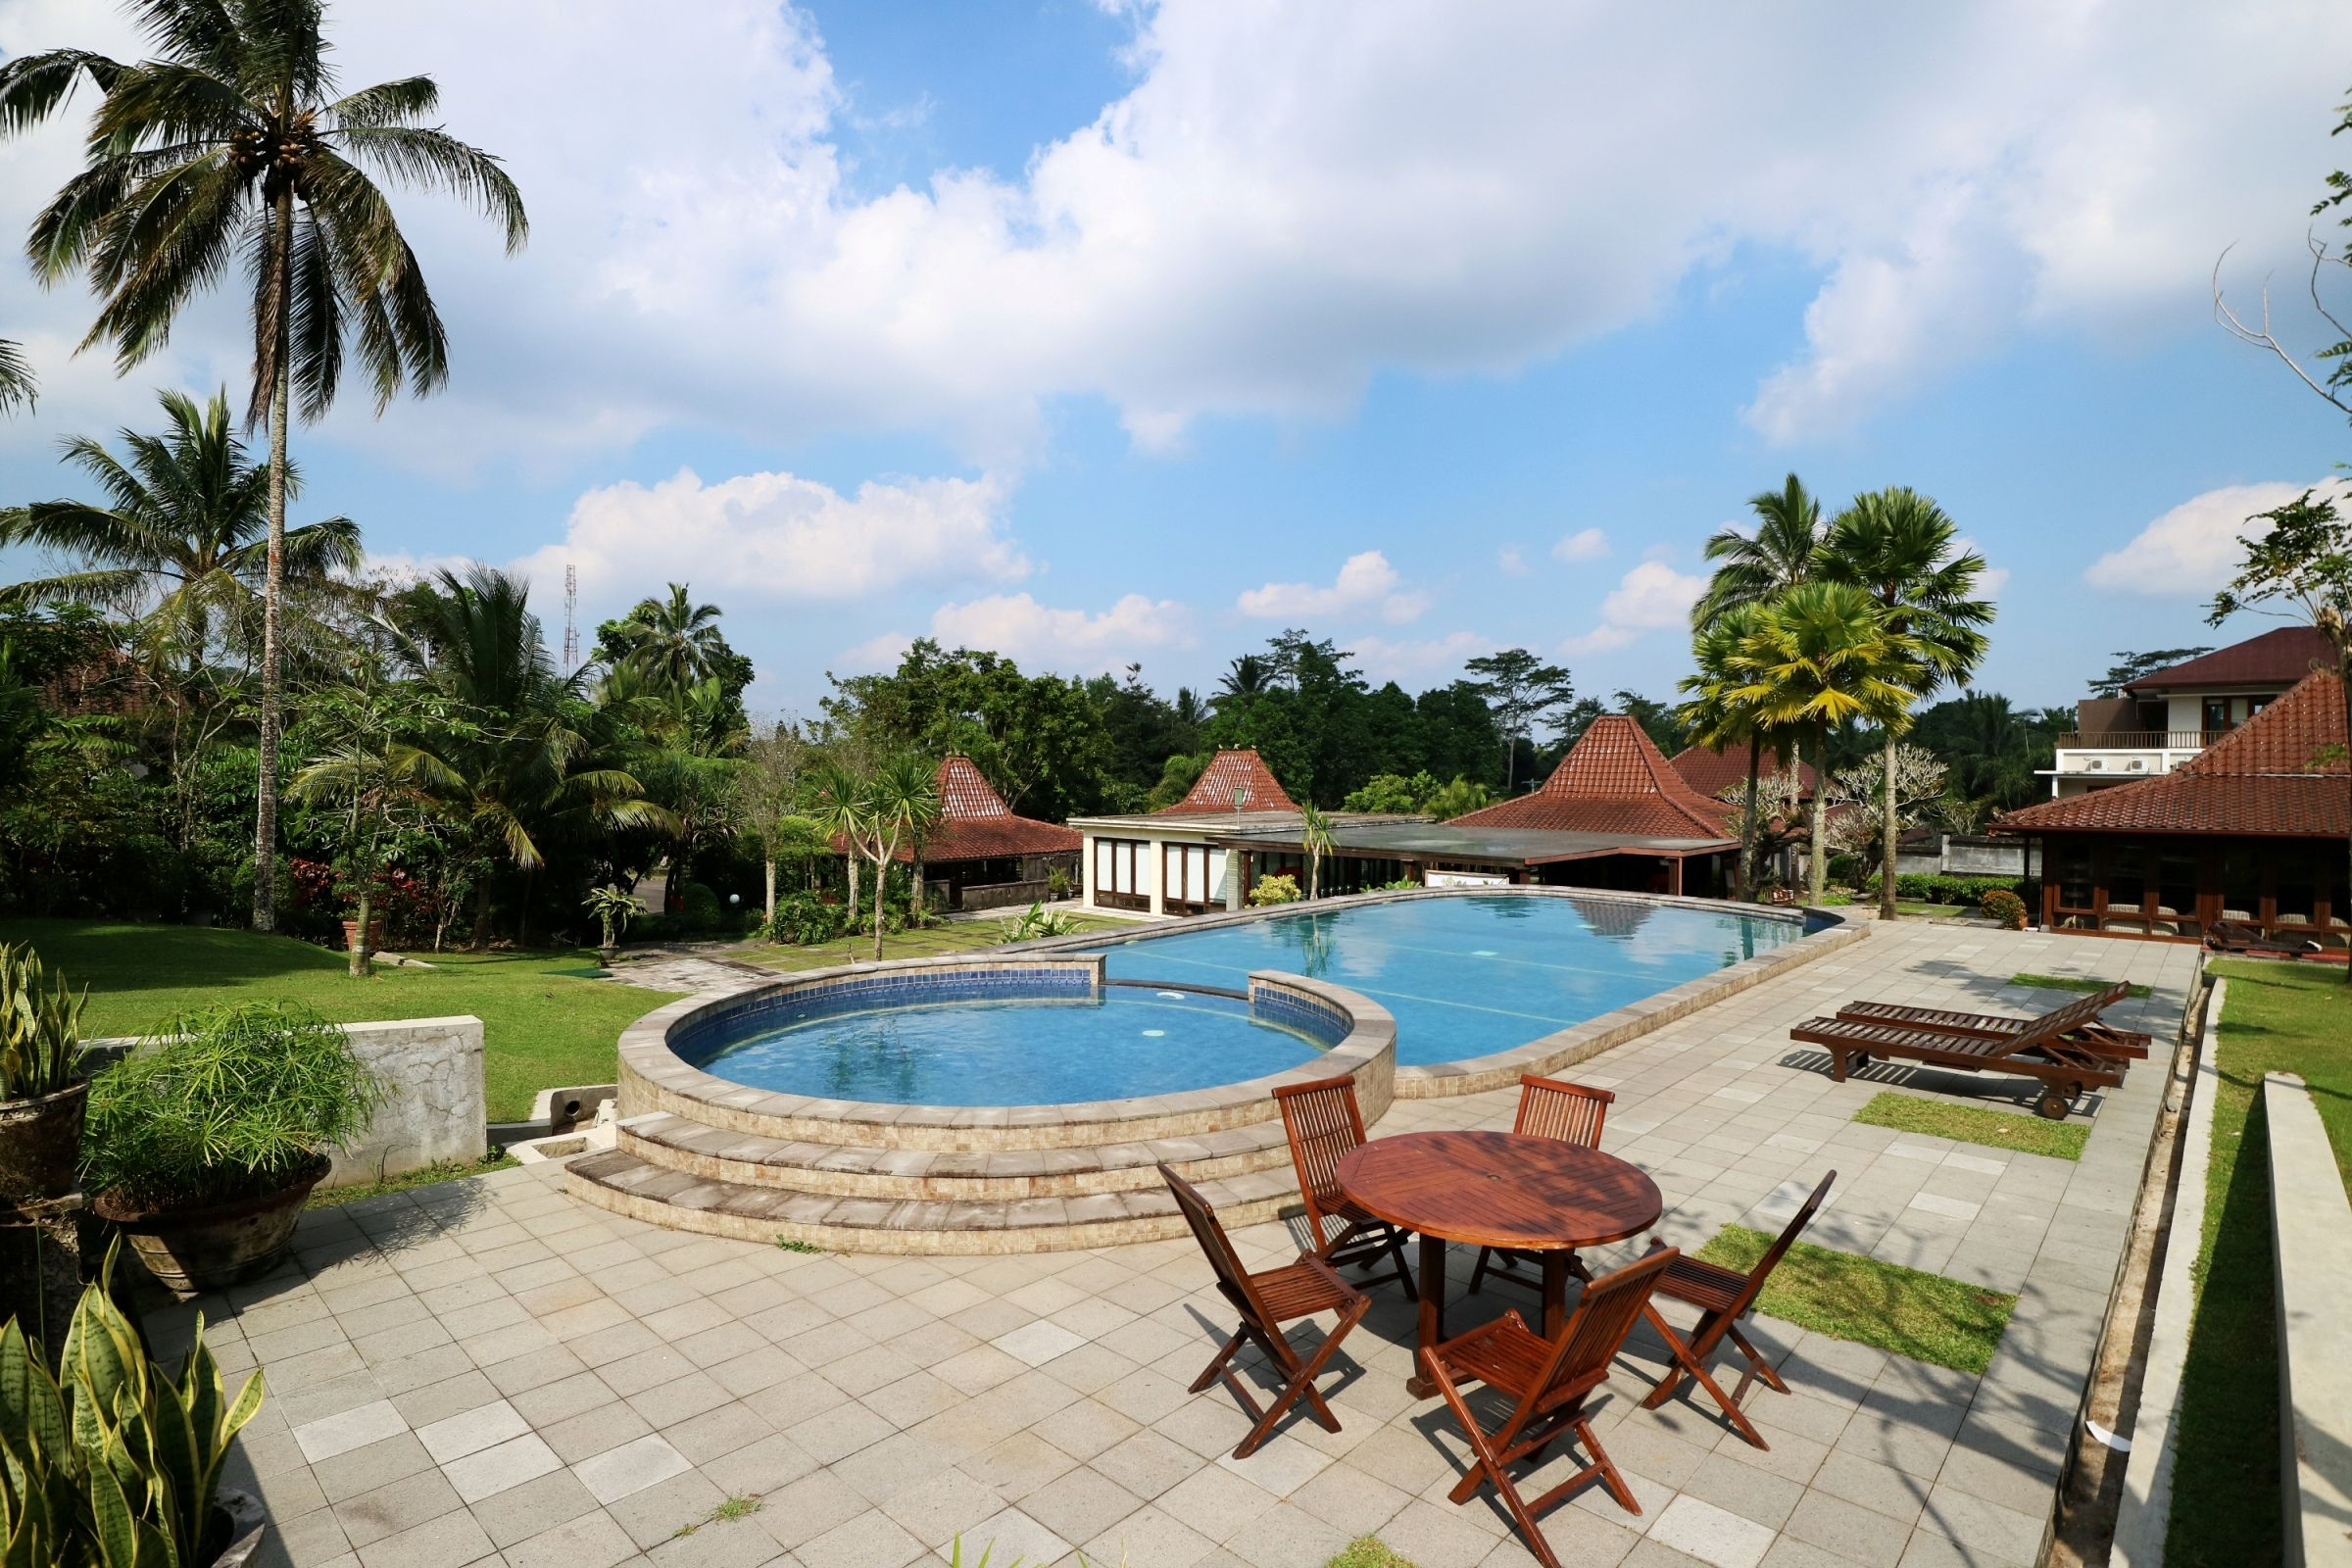 The Cangkringan Jogja Villas & Spa, Sleman